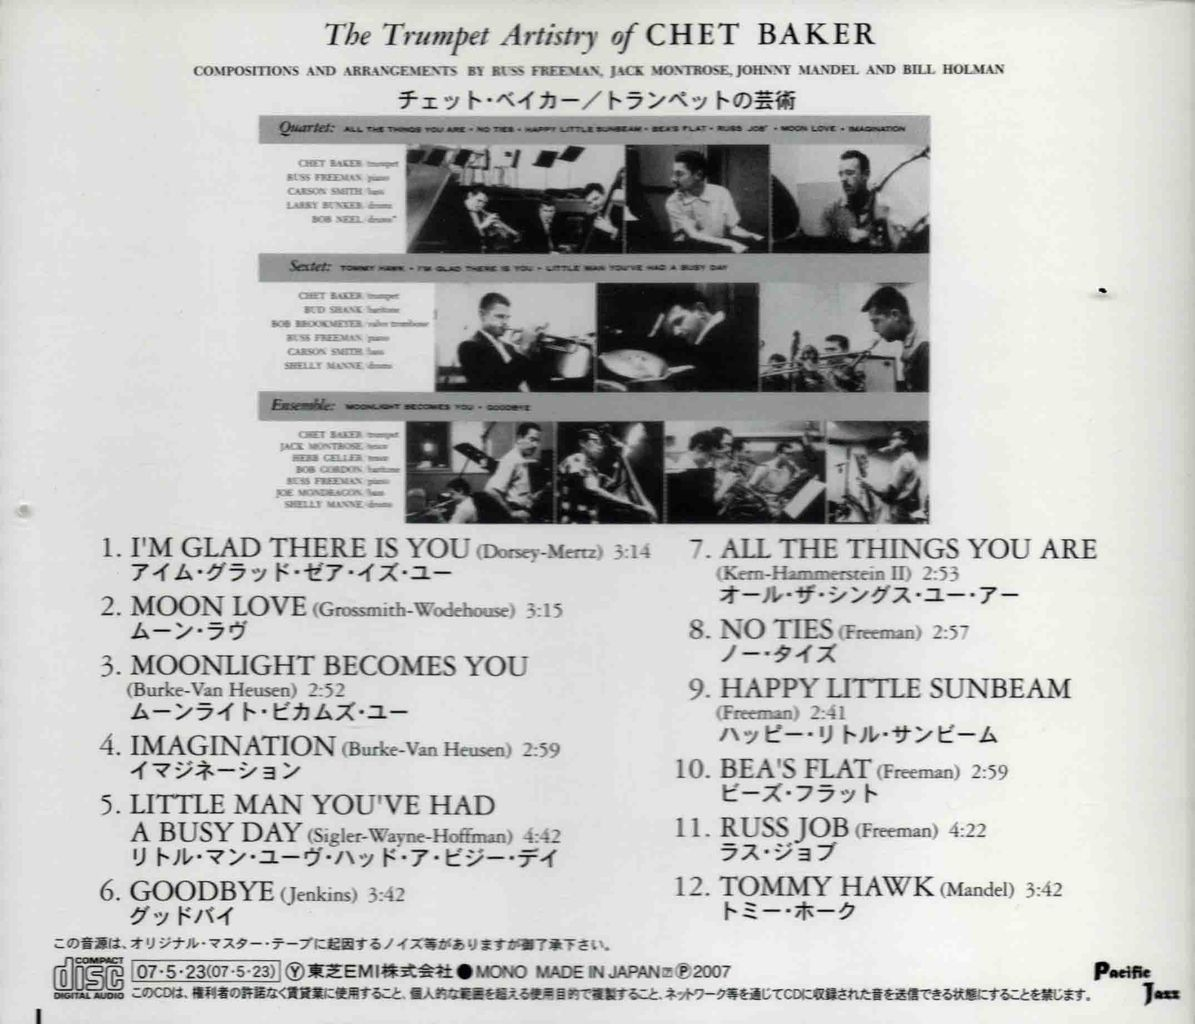 THE TRUMPET ARTISTRY OF CHET BAKER-2